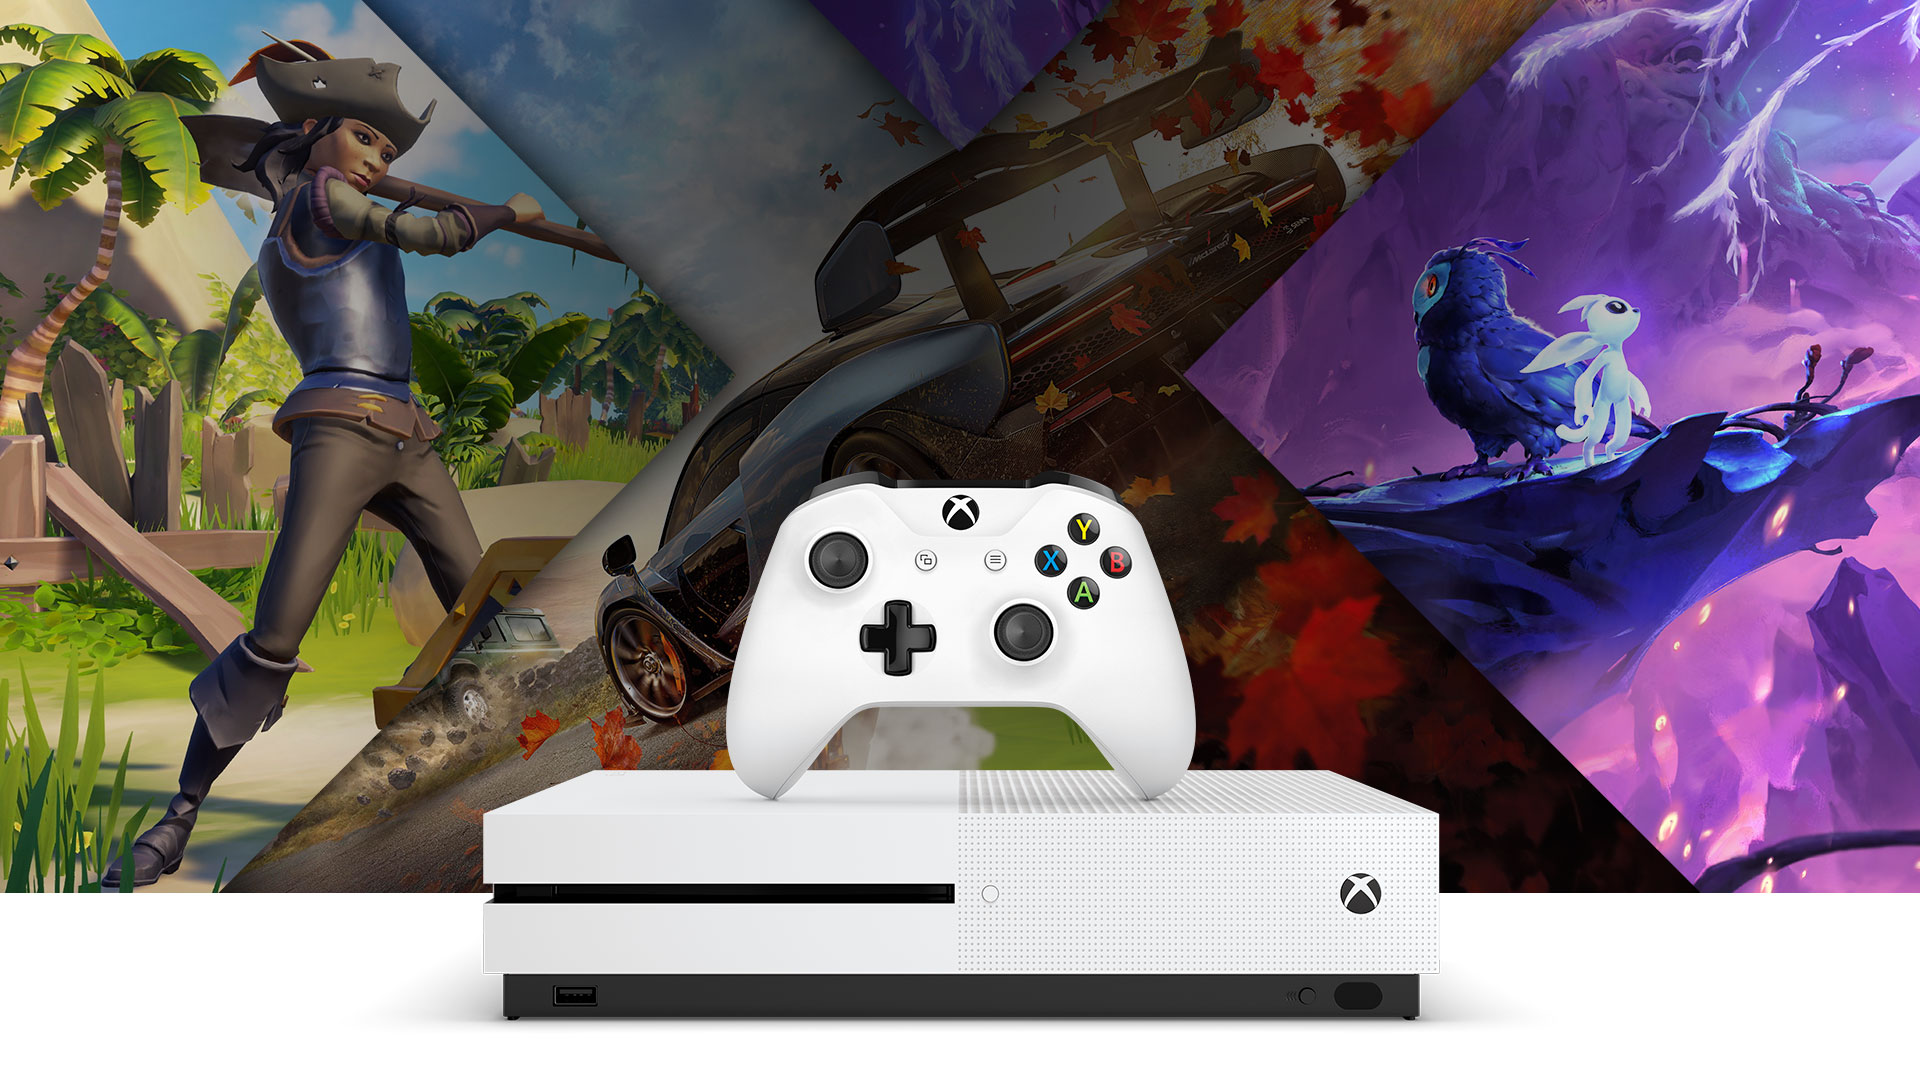 Vista anteriore della console Xbox One S e del Controller Wireless bianco circondati dalle immagini di Sea of Thieves, Forza Horizon 4, Ori and the Will of Wisps